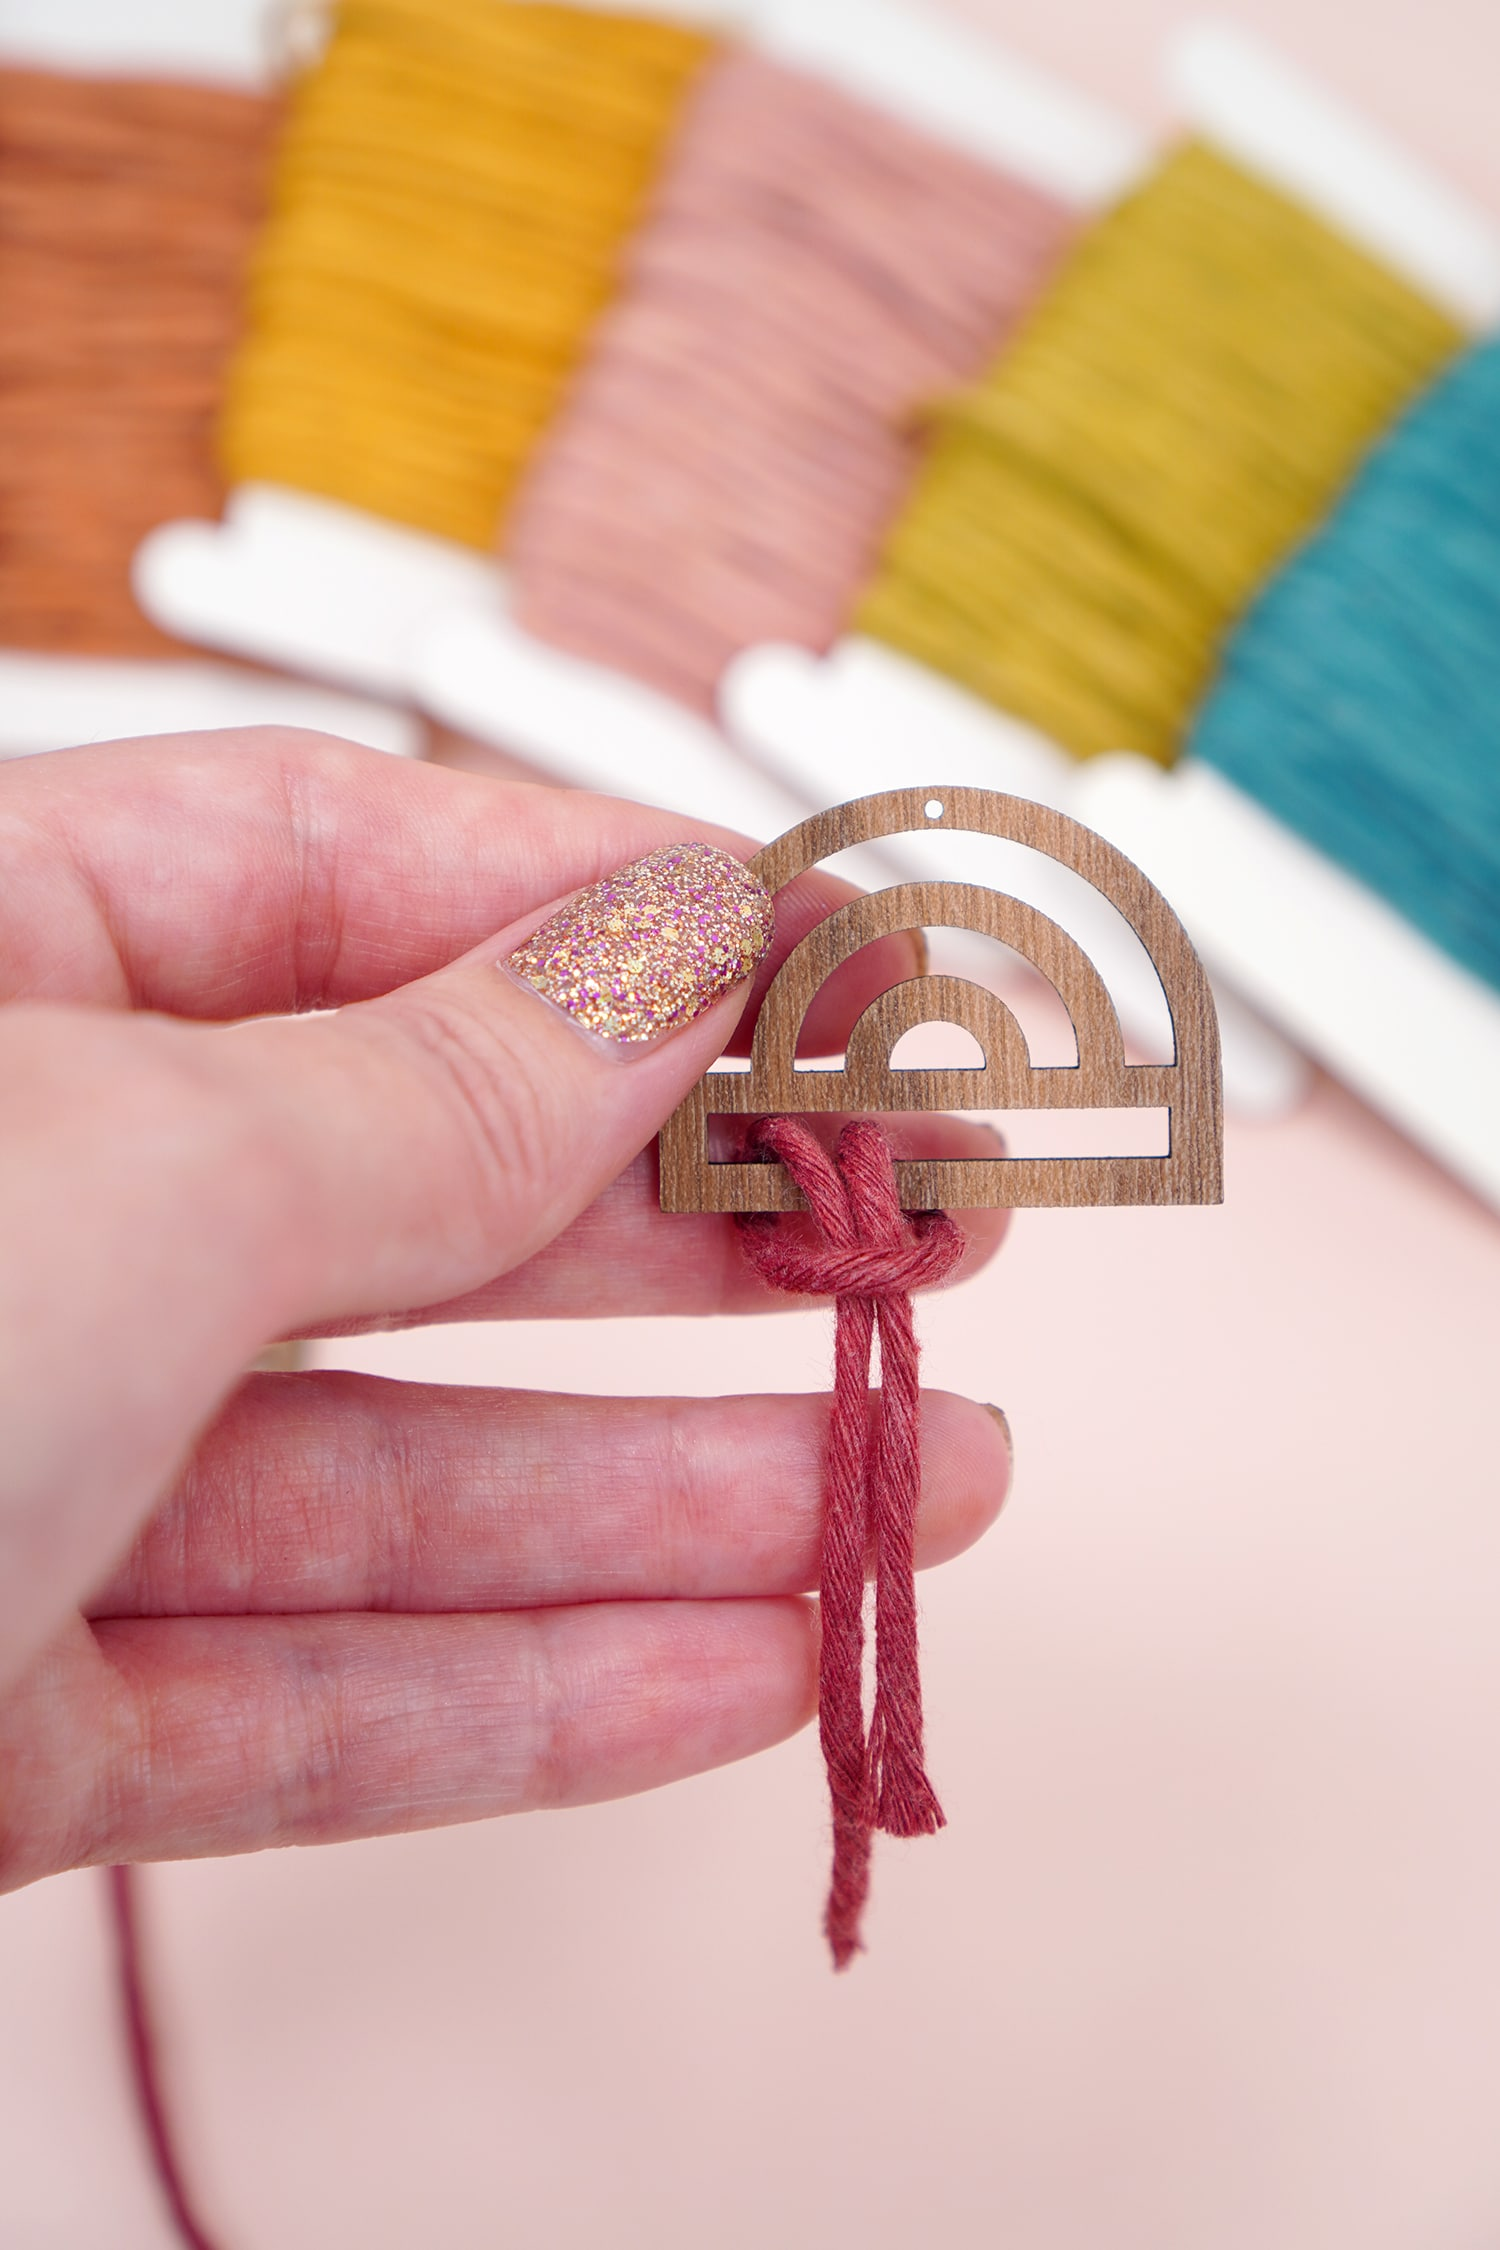 Hand attaching macrame cord to a wooden rainbow earring with macrame cord in background